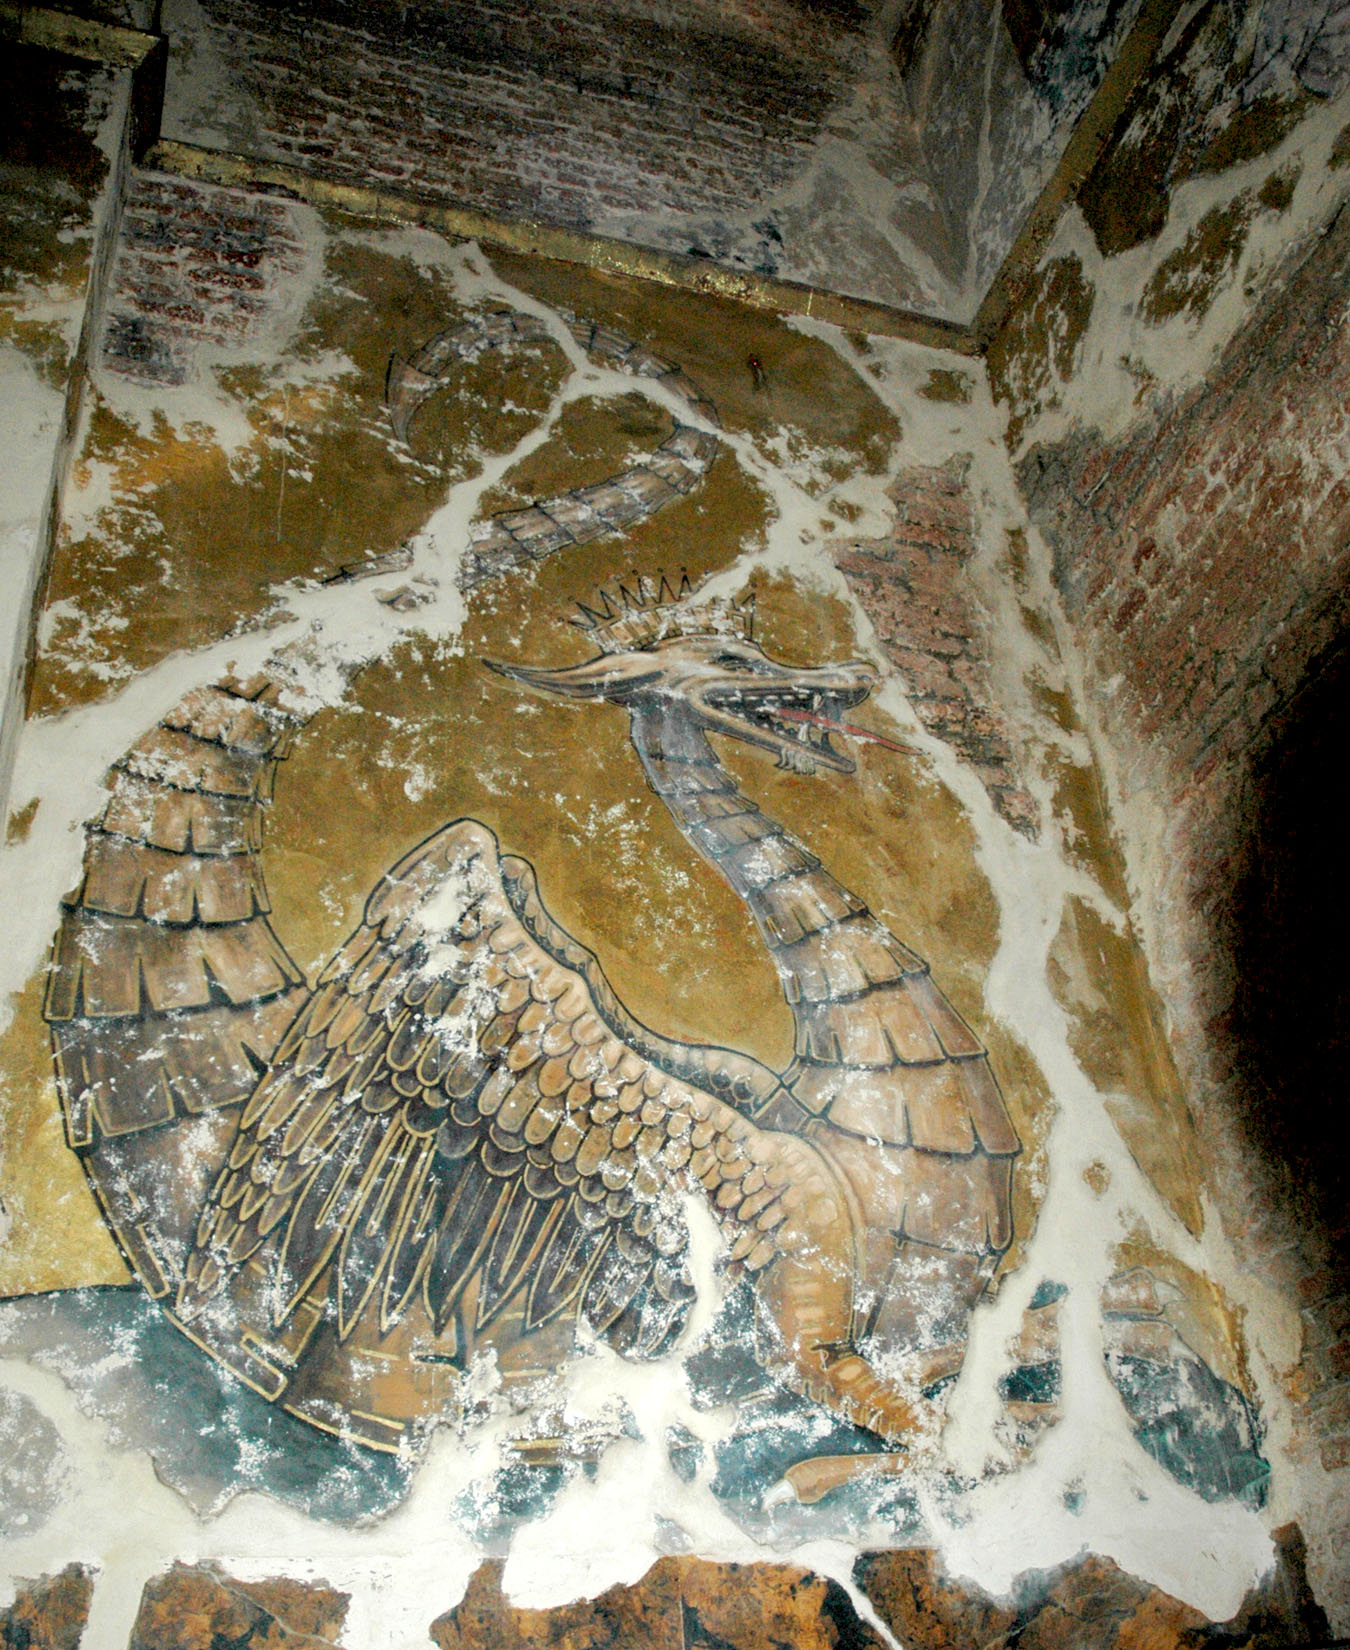 Trail Chamber mural detail